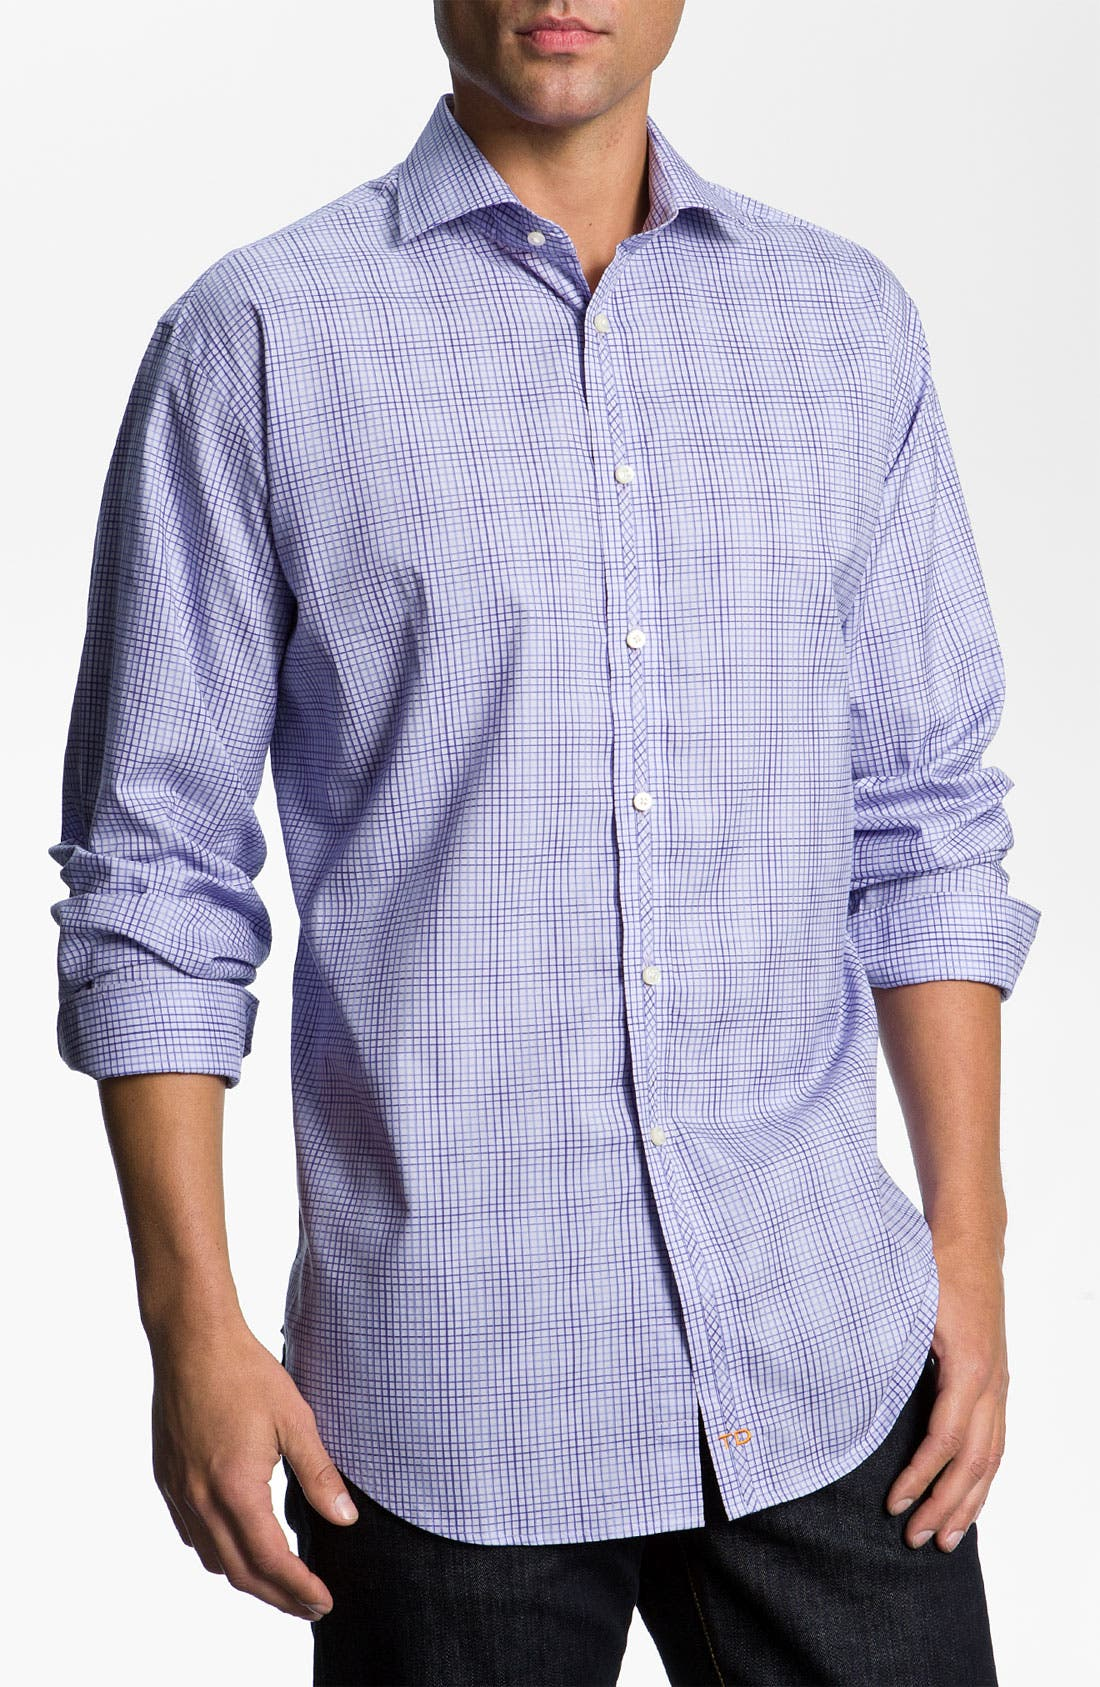 Alternate Image 1 Selected - Thomas Dean Check Sport Shirt